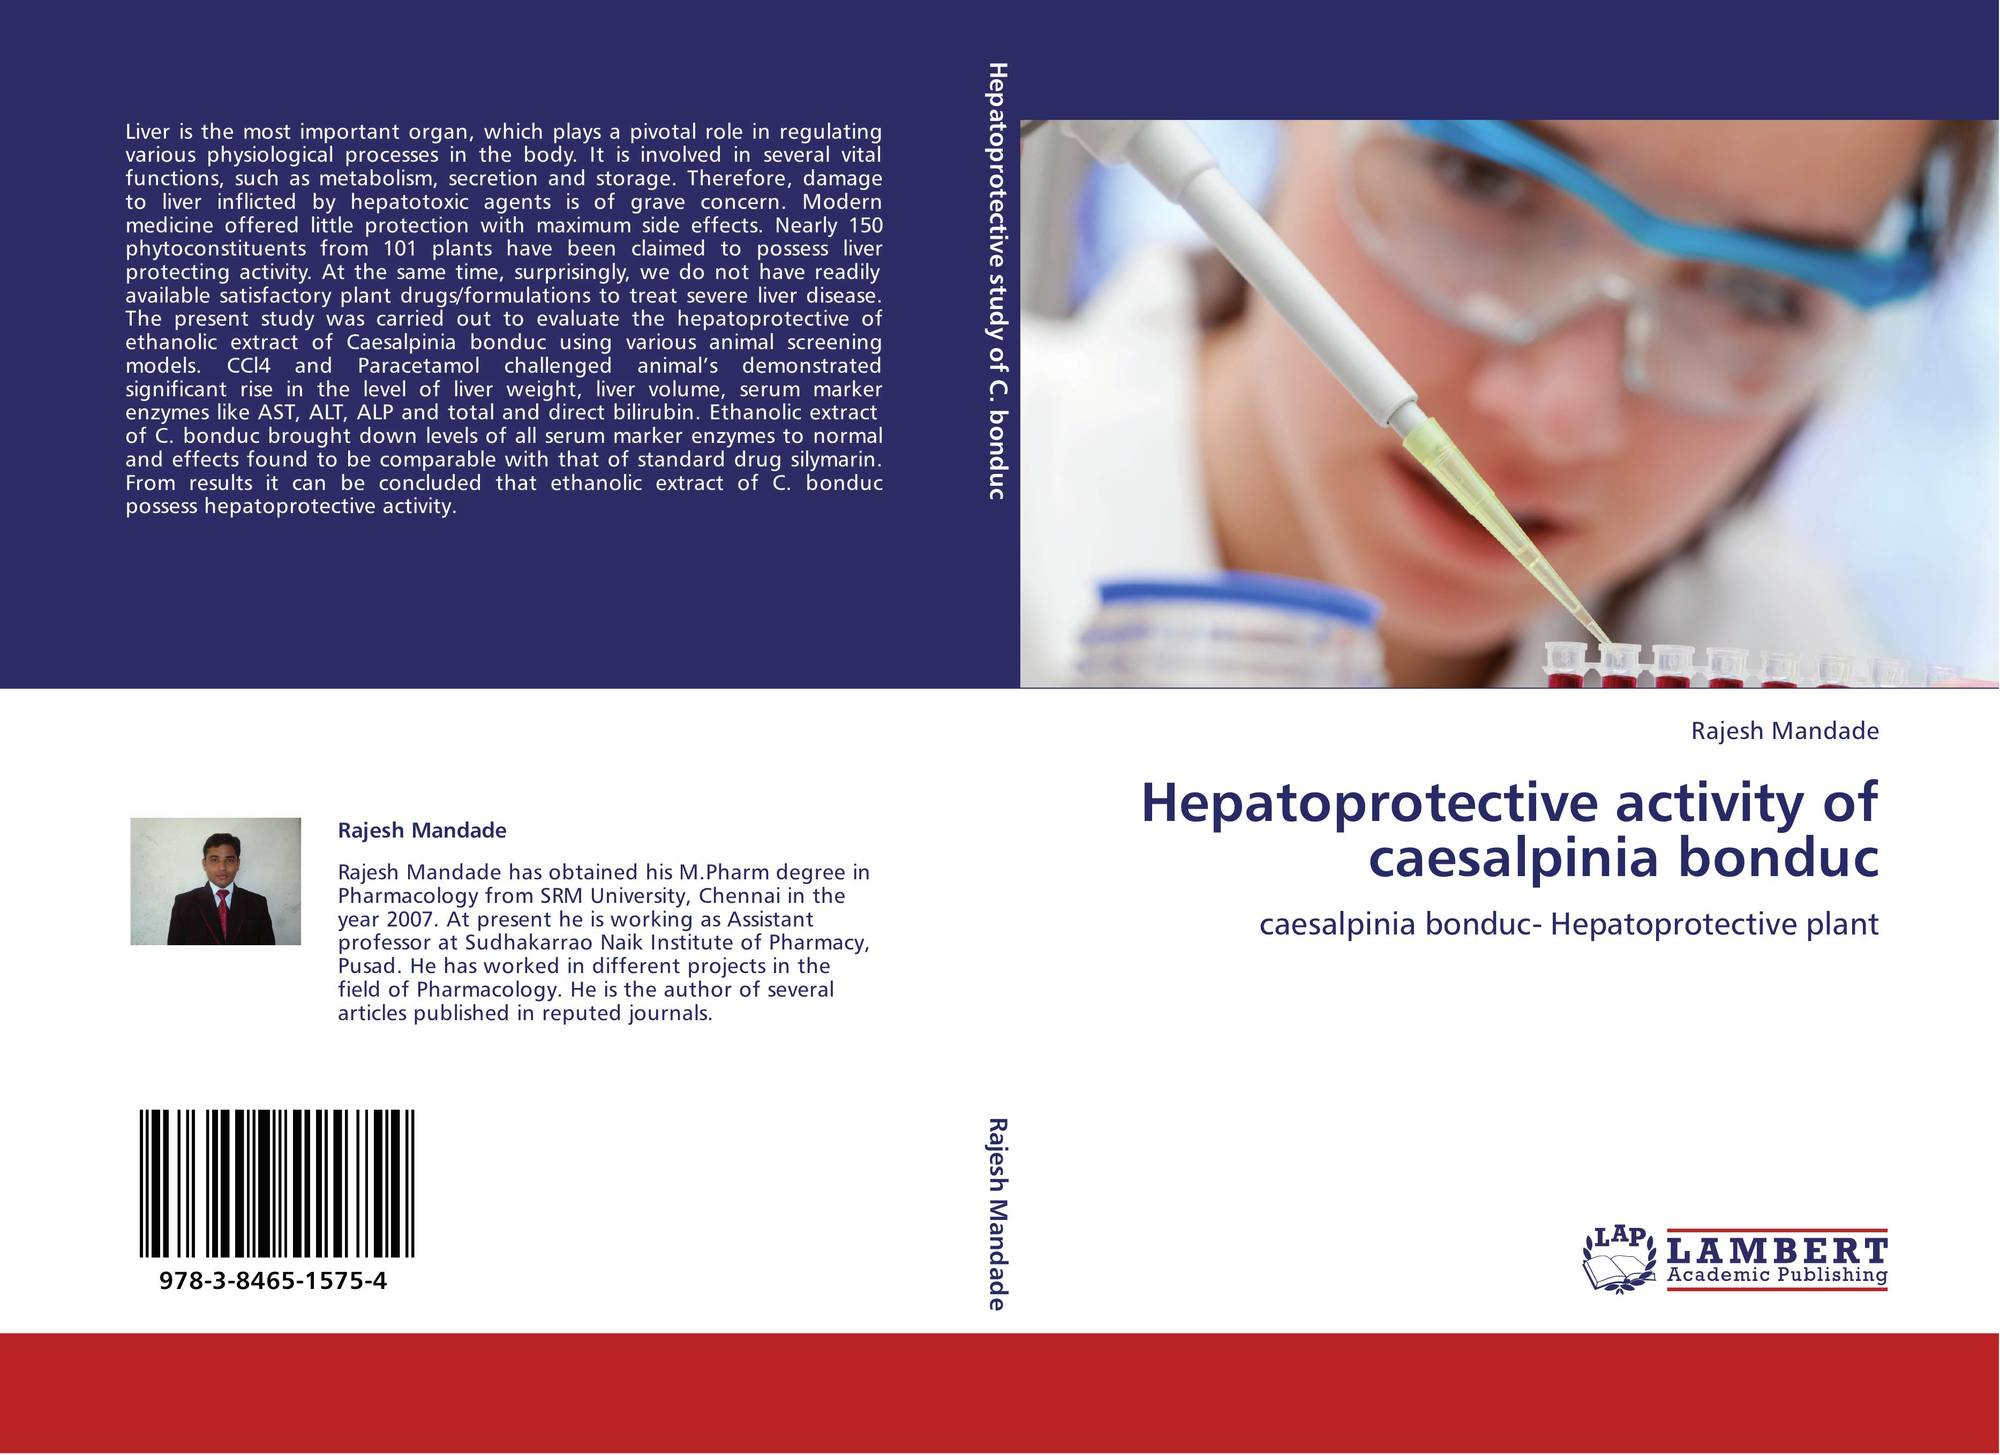 thesis on hepatoprotective activity Evaluation of hepatoprotective activity of aqueous seed extract of nigella sativa in highly active antiretroviral therapy administered rats.